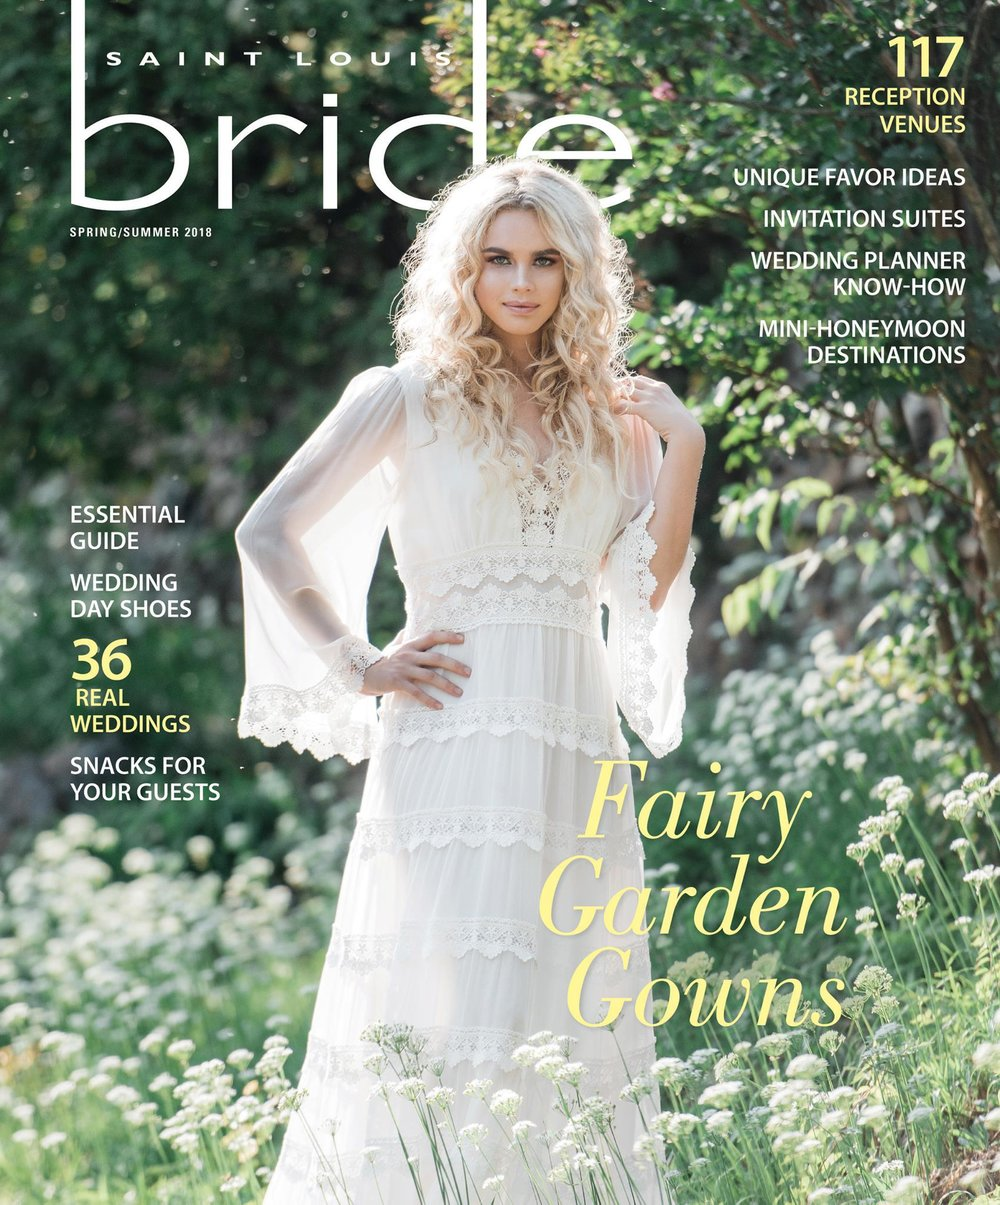 Saint Louis Bride Magazine Spring/Summer 2018  Kite and Butterfly